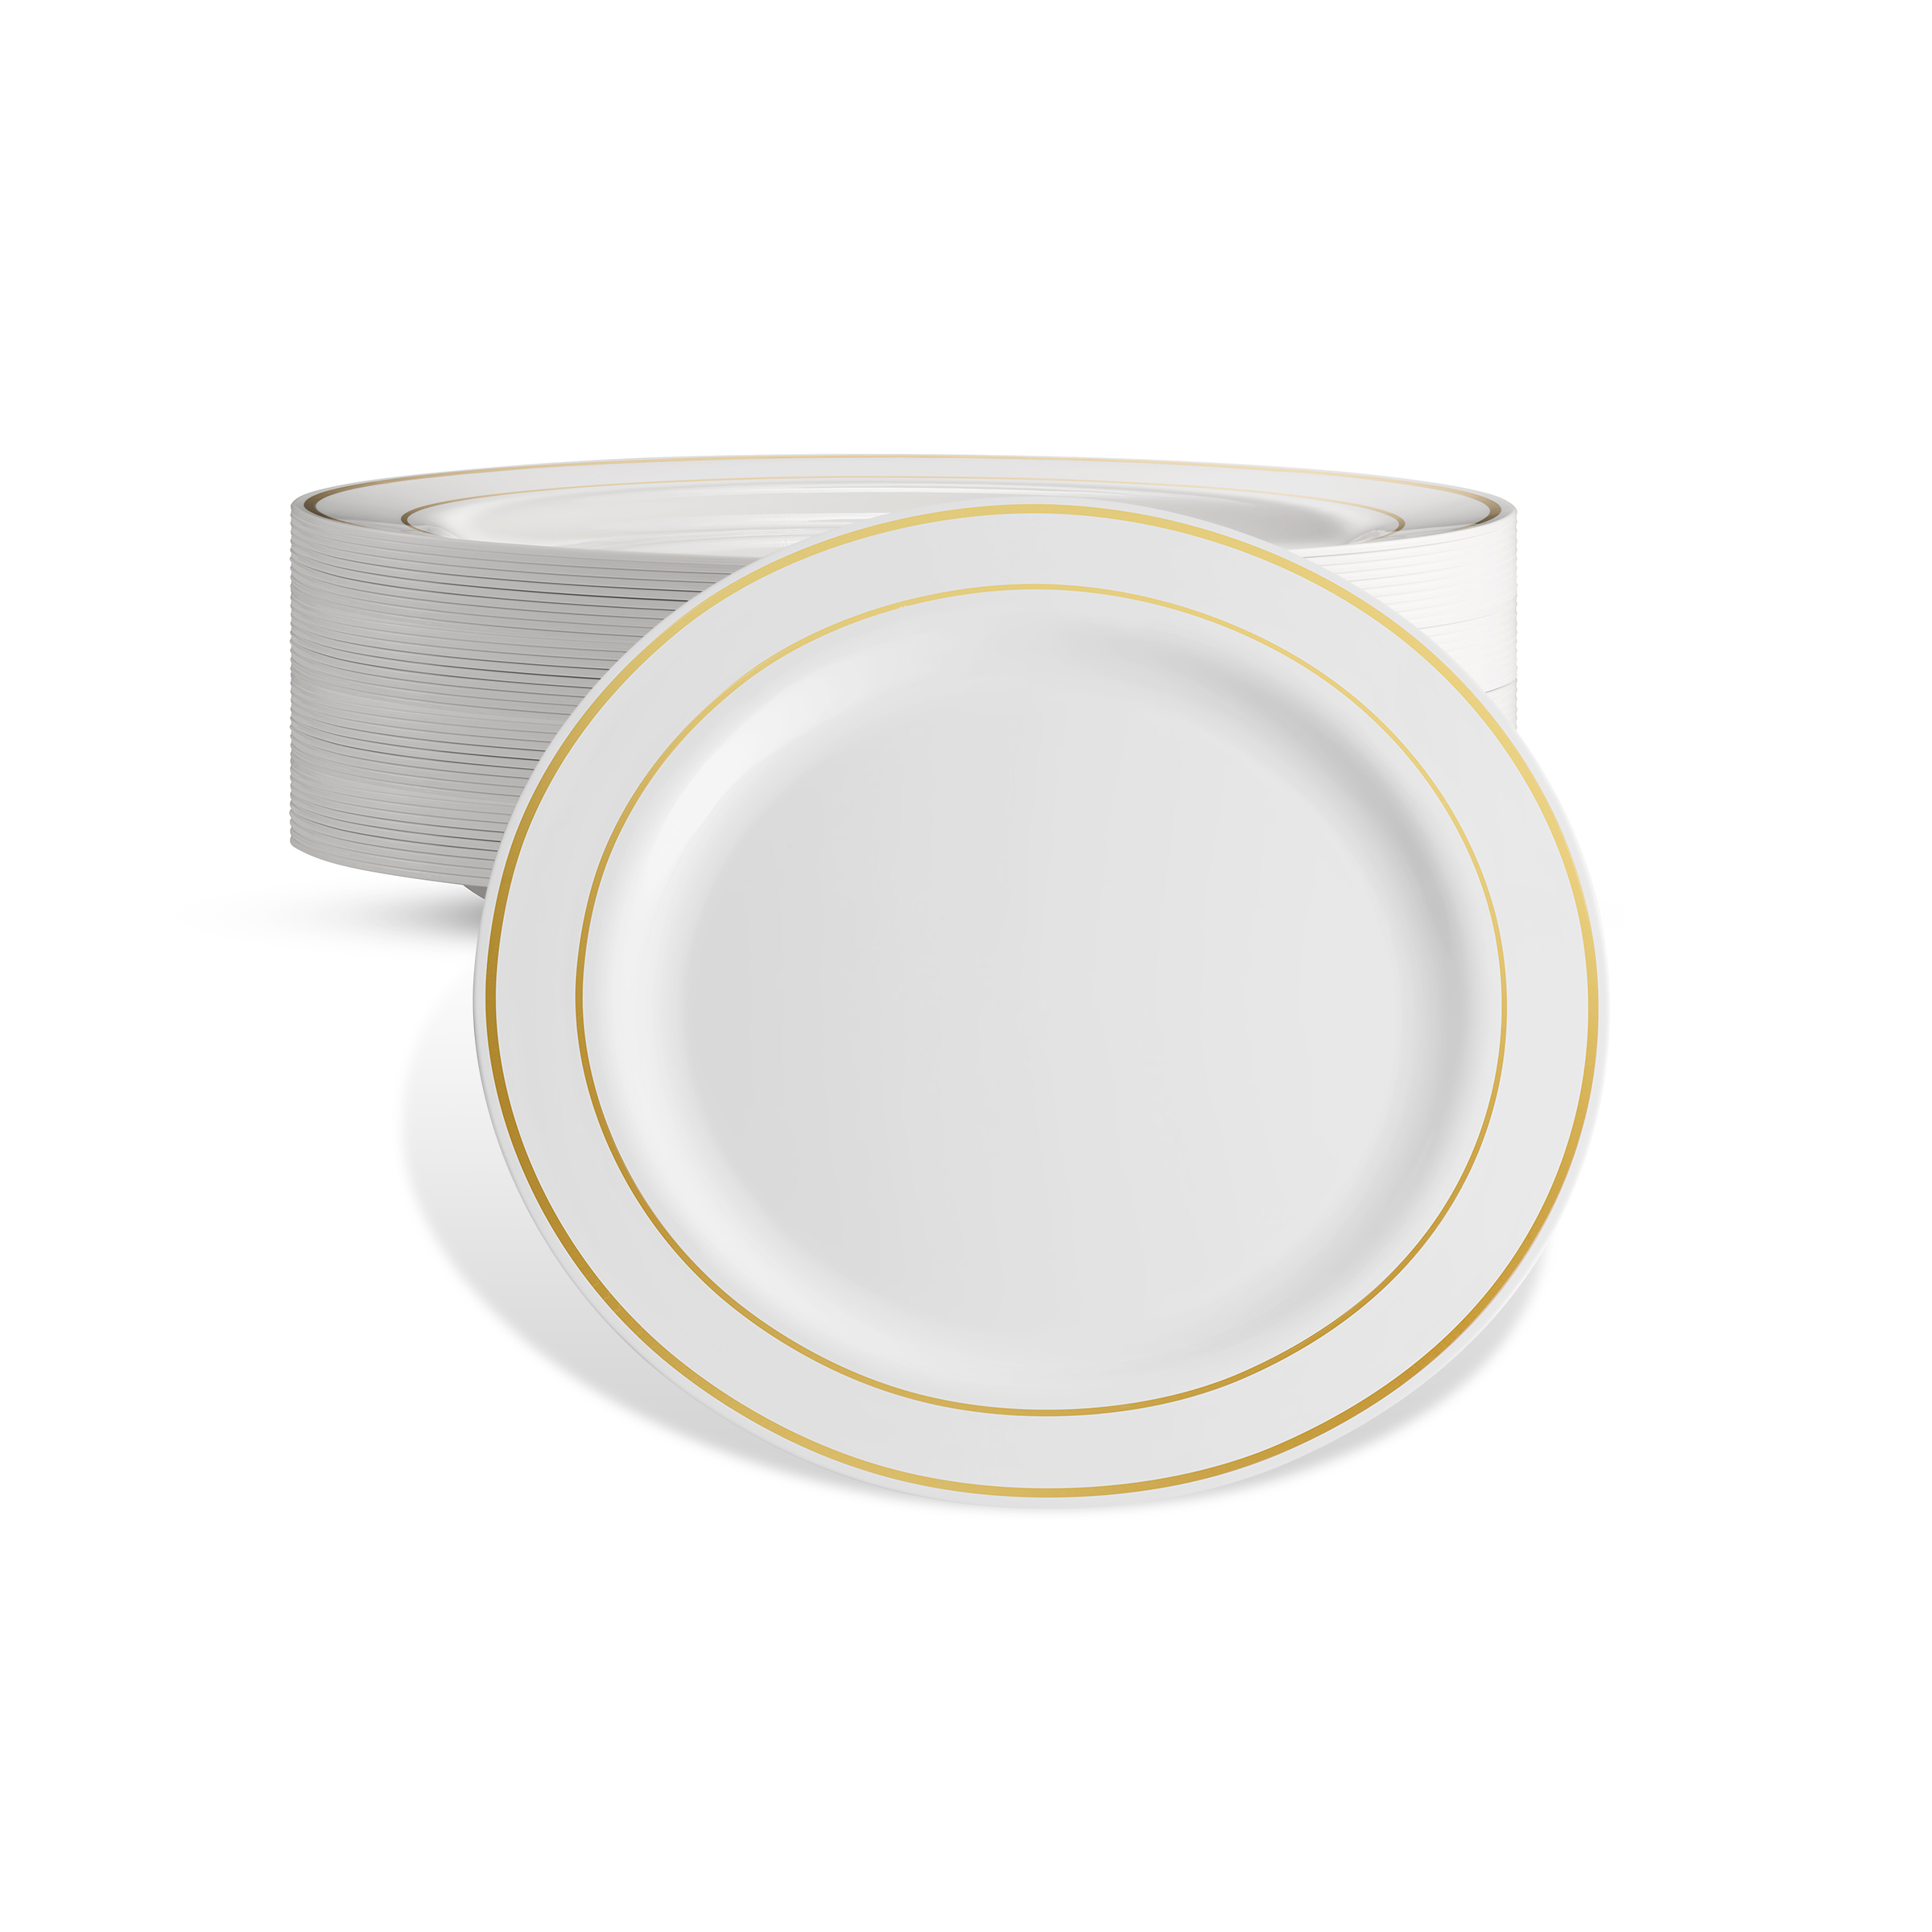 DELUXE PLASTIC PARTY DISPOSABLE PLATES   6 Inch Hard Wedding Dessert Plates   White with Gold  sc 1 st  Walmart.com & DELUXE PLASTIC PARTY DISPOSABLE PLATES   6 Inch Hard Wedding ...